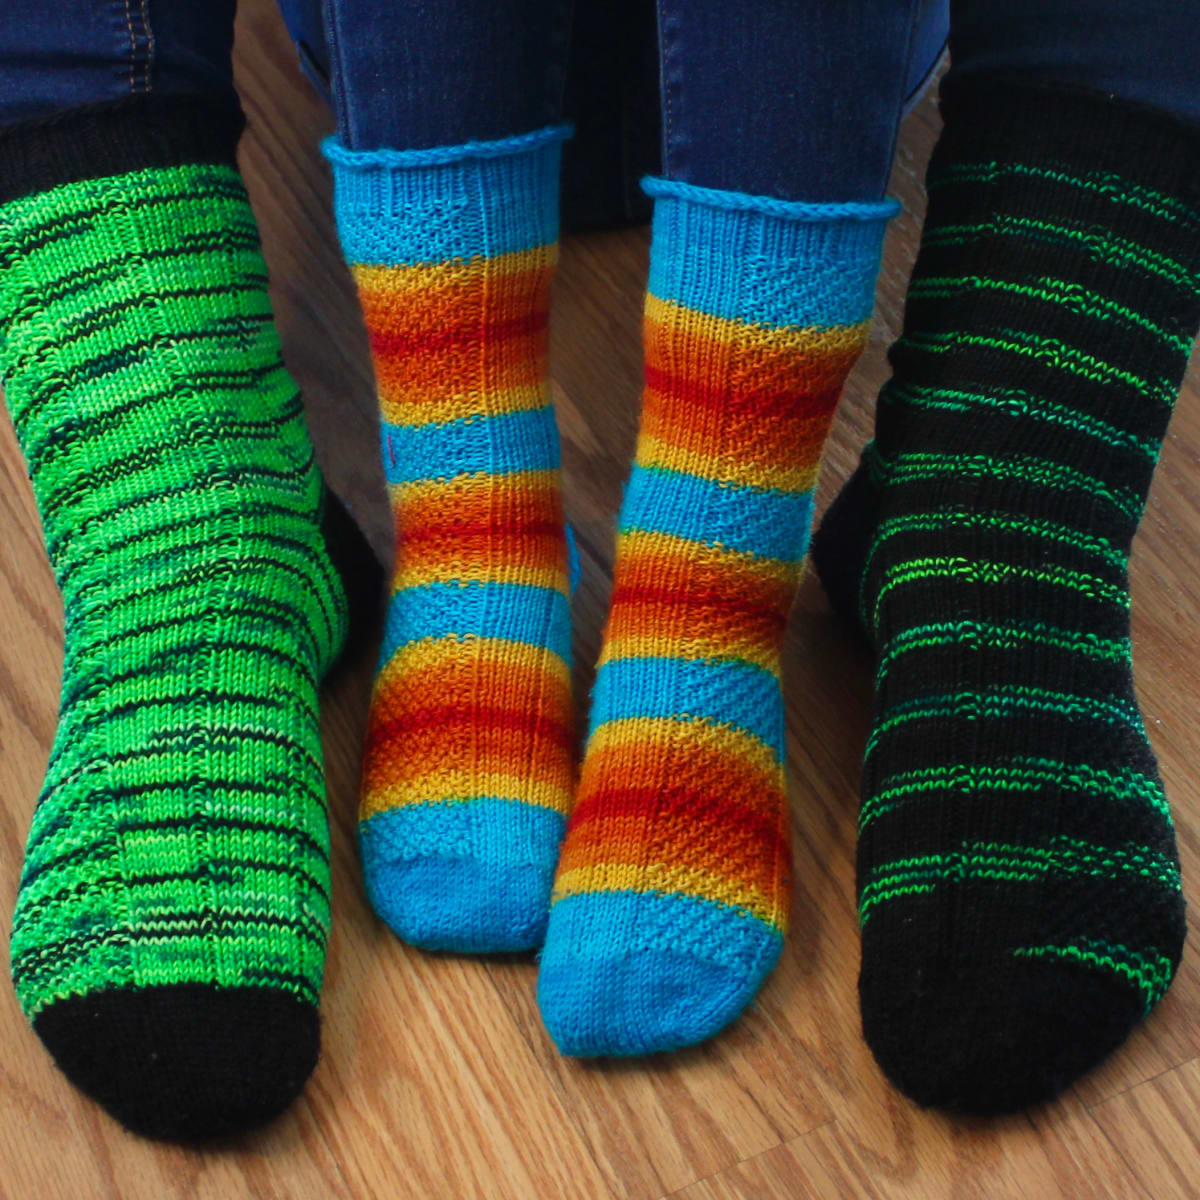 Small child feet wearing striped socks with texture detail between adult feet wearing green and black socks with the same texture detail.